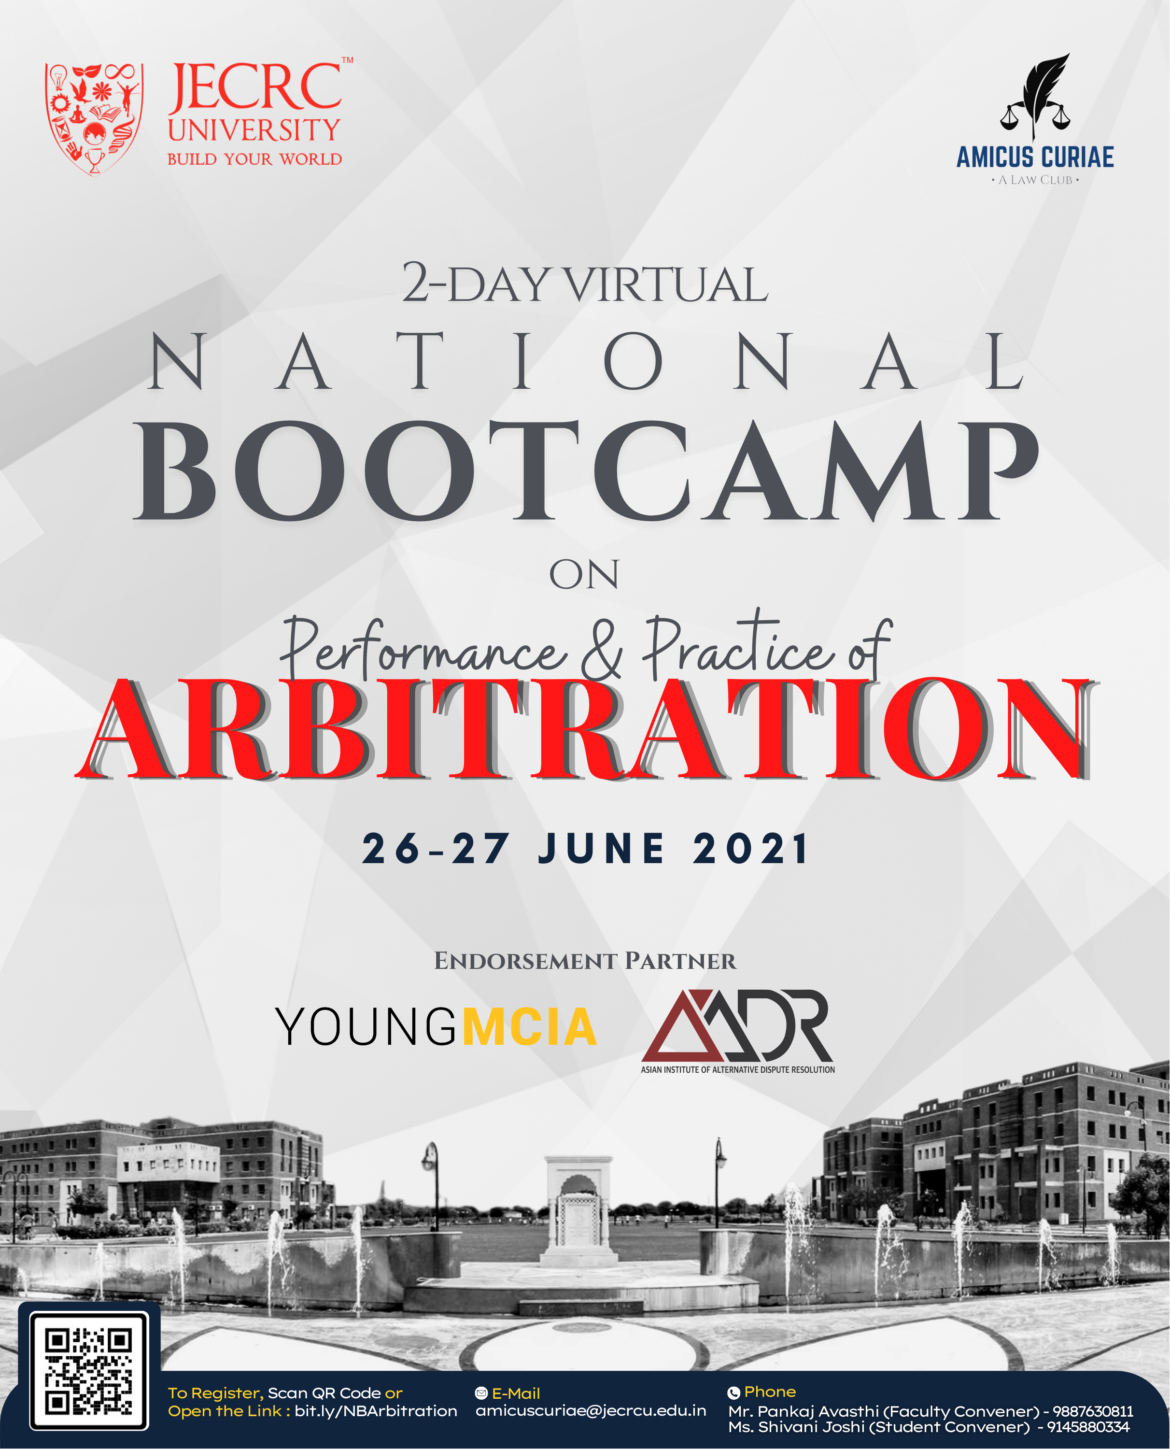 National Bootcamp on Arbitration by JECRC University on 26th – 27th of June, 2021